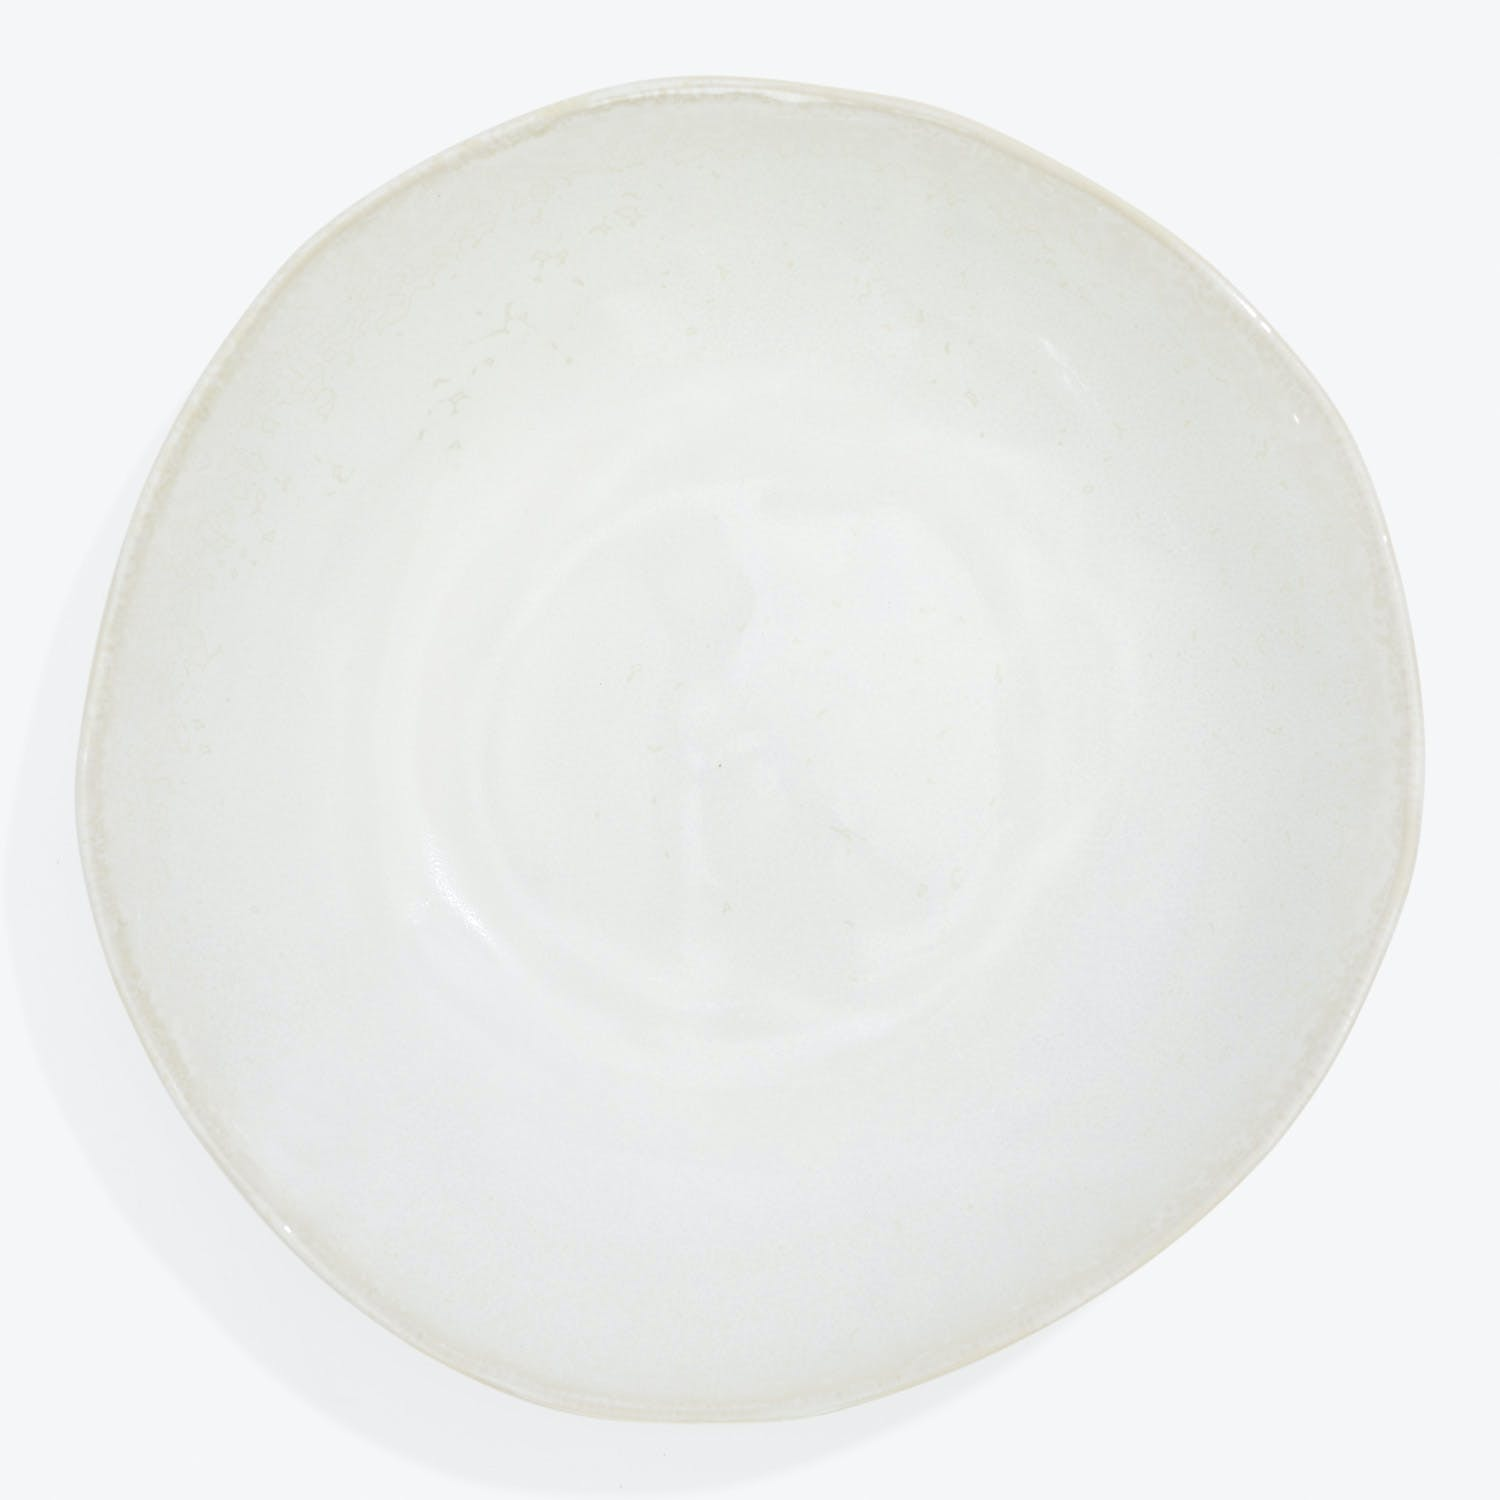 abcV Serving Bowl White